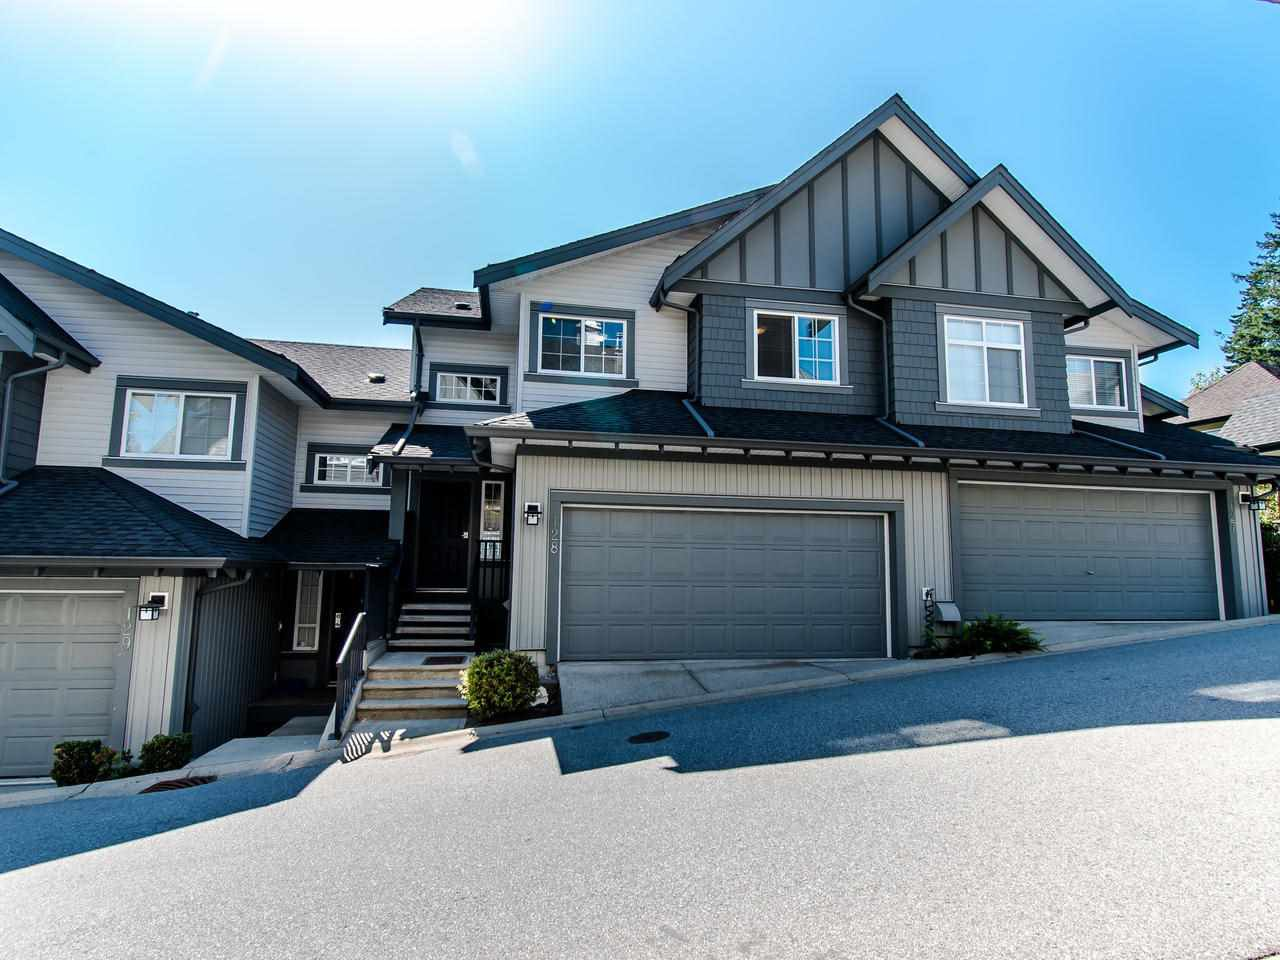 Main Photo: 128 2200 PANORAMA DRIVE in Port Moody: Heritage Woods PM Townhouse for sale : MLS®# R2403790